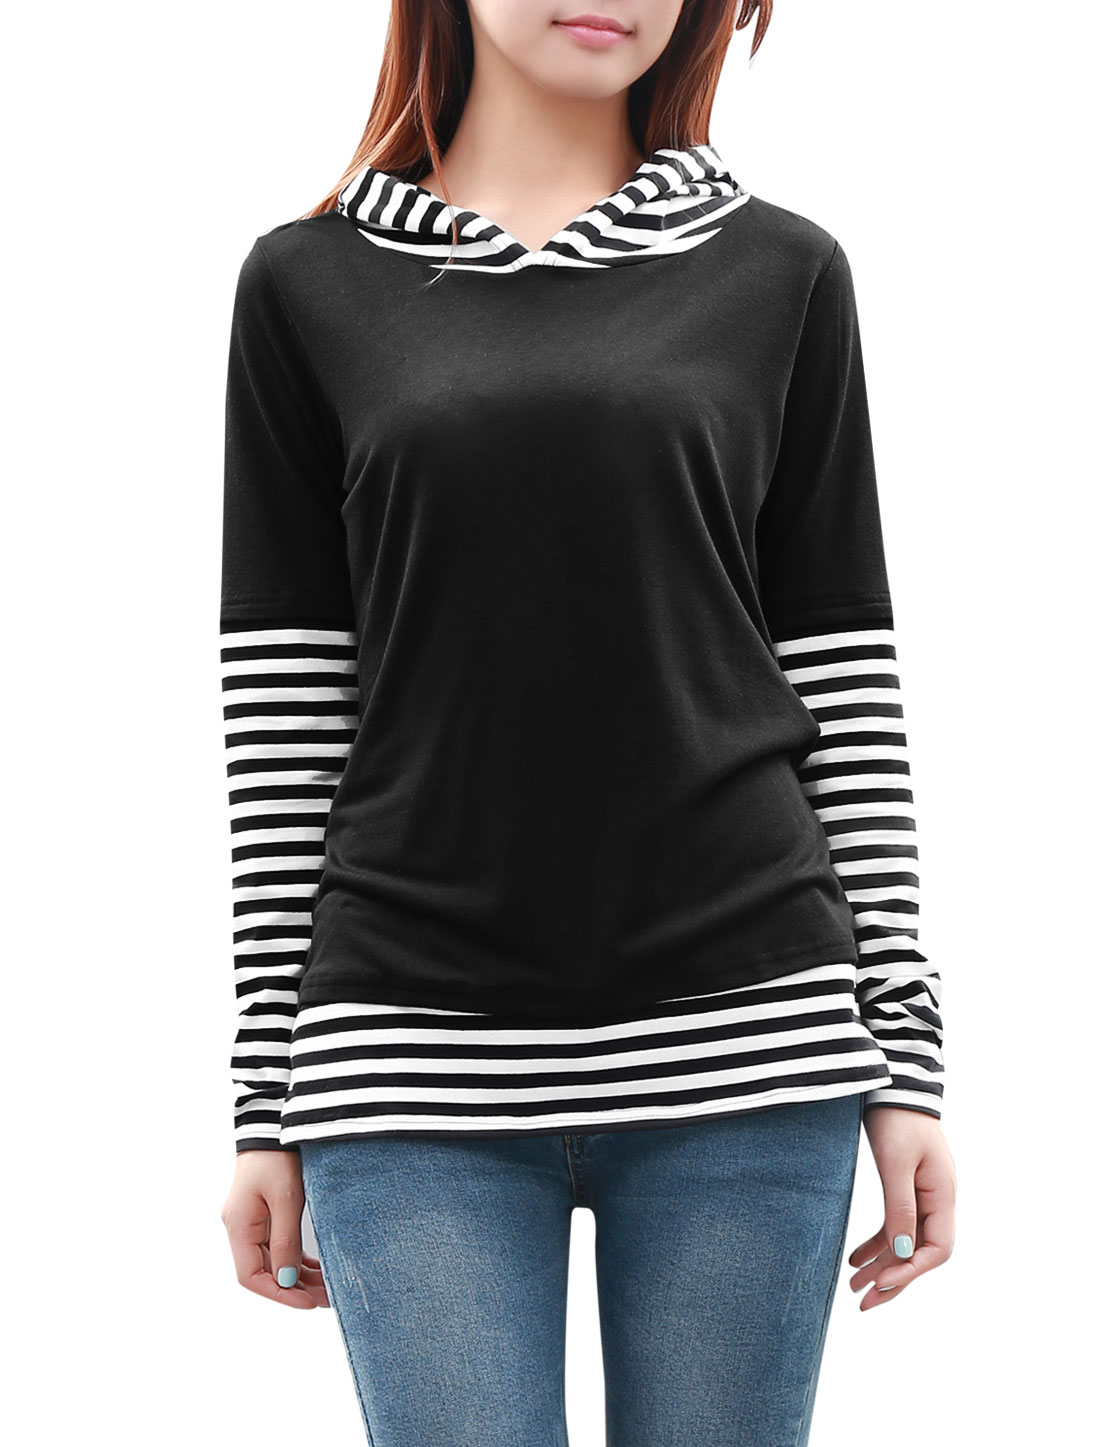 Striped Long Sleeve Pullover Autumn Hooded Shirt XS for Women Black White